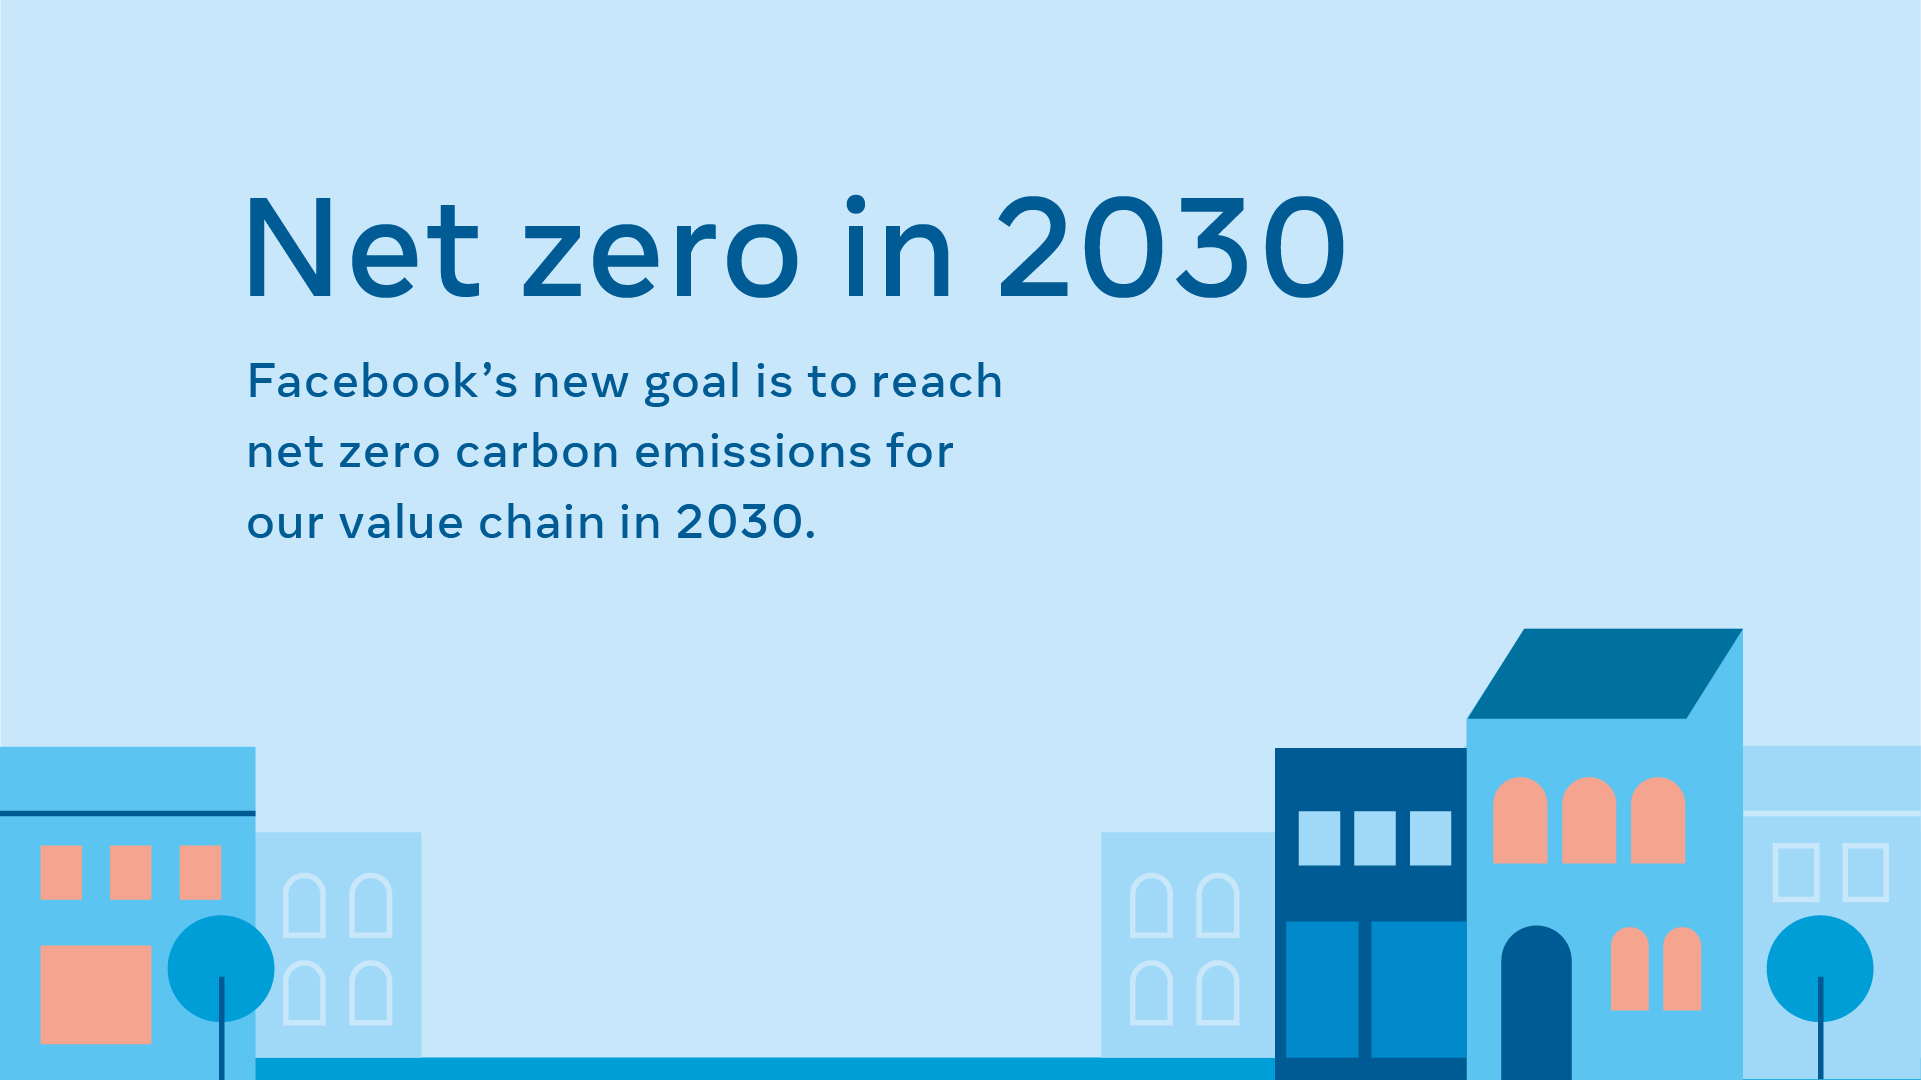 we are sharing our commitment to reach net zero emissions for our global operations and value chain in 2030.